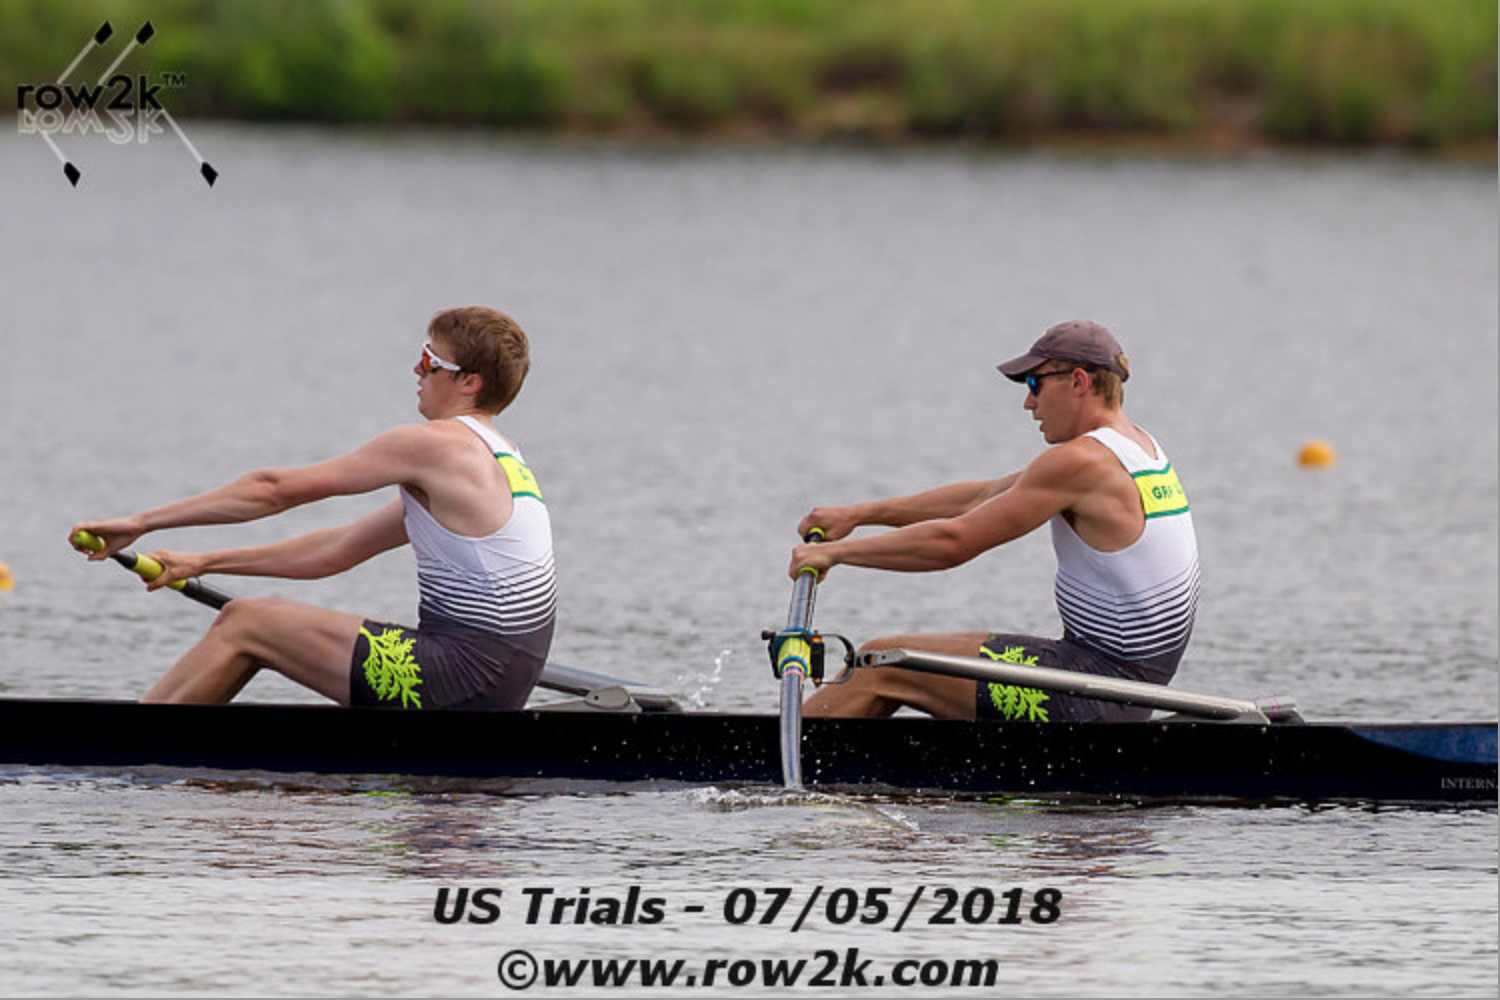 Jack Reid '20 (bow) racing for a spot on the US Under-23 National Team. Photo copyright Row2k.